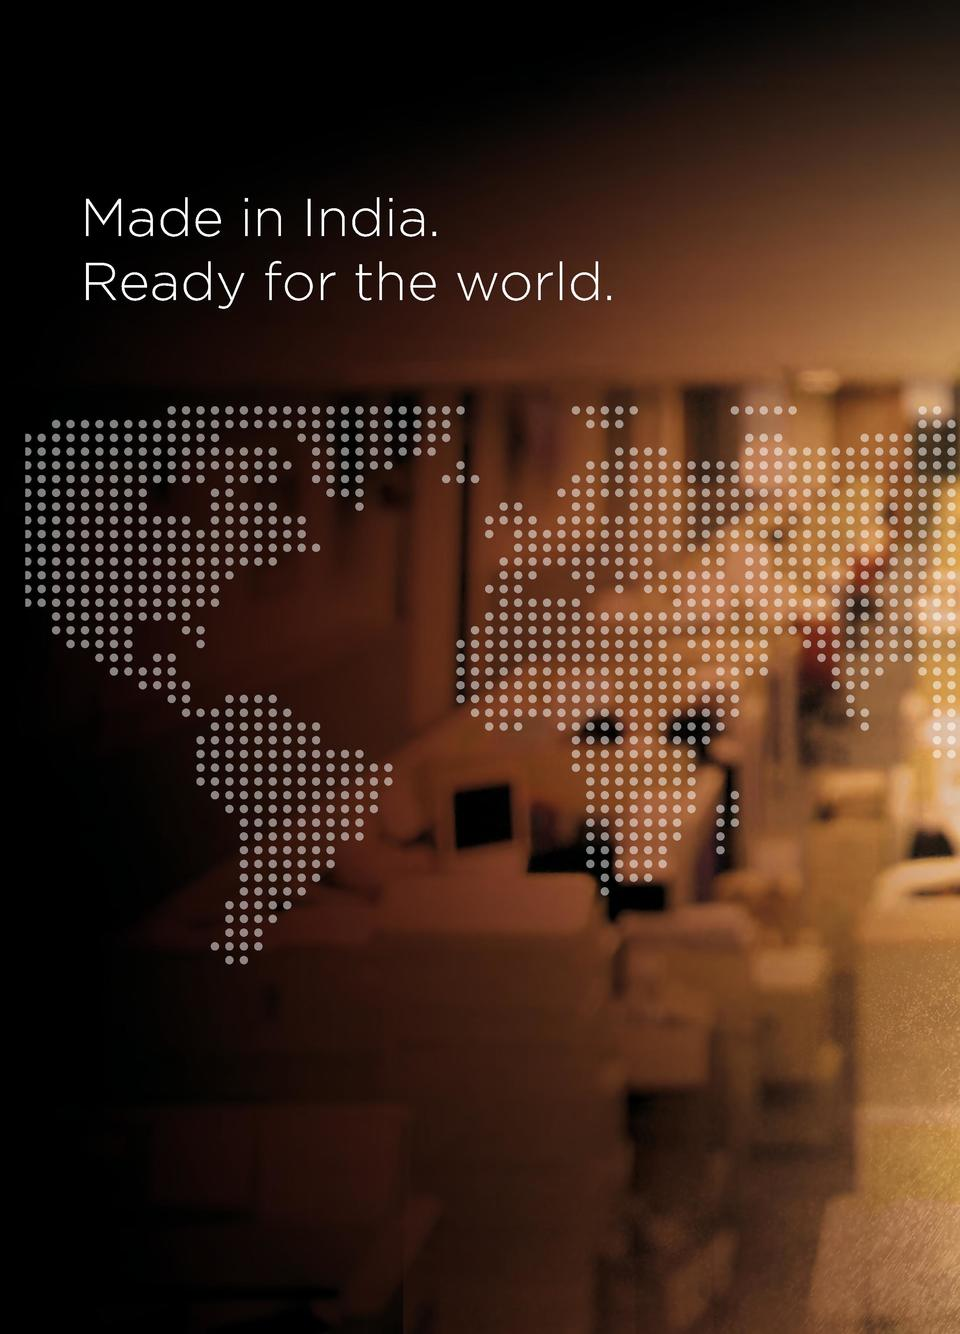 Made in India. Made in India. Ready for the world. Ready for the world.  COVER INSIDE